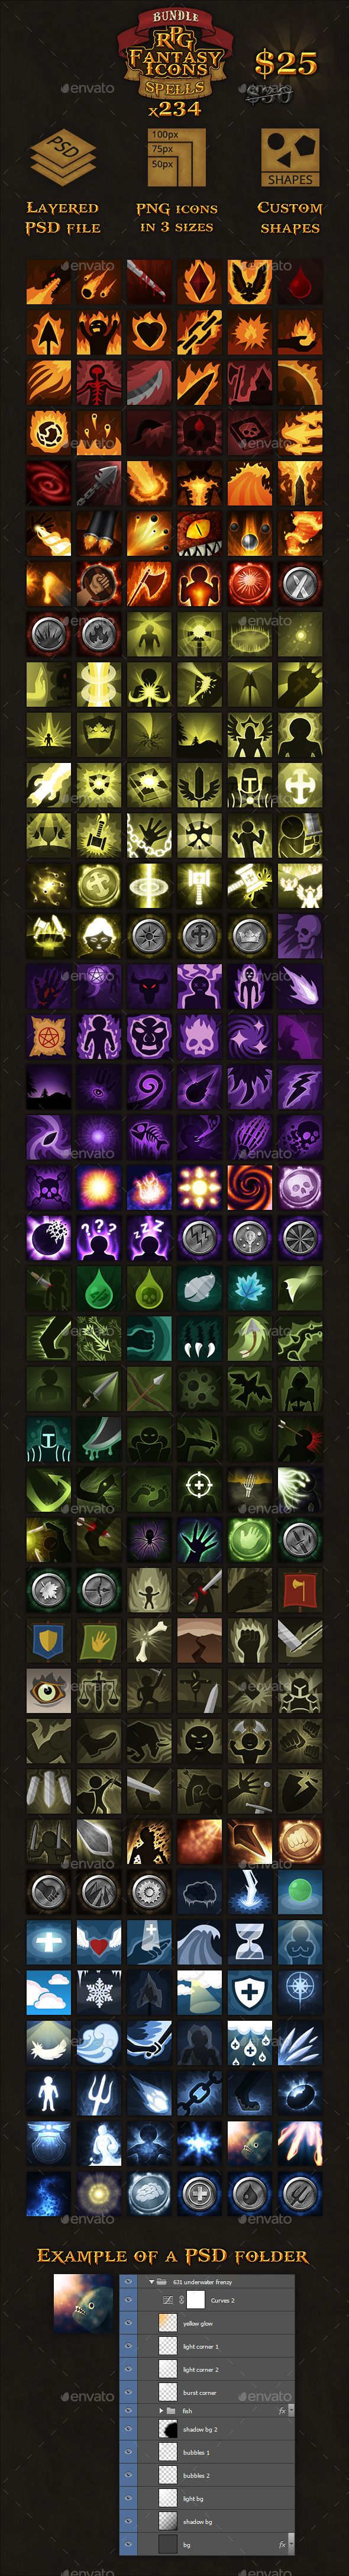 234 RPG Fantasy Spells Icons Bundle